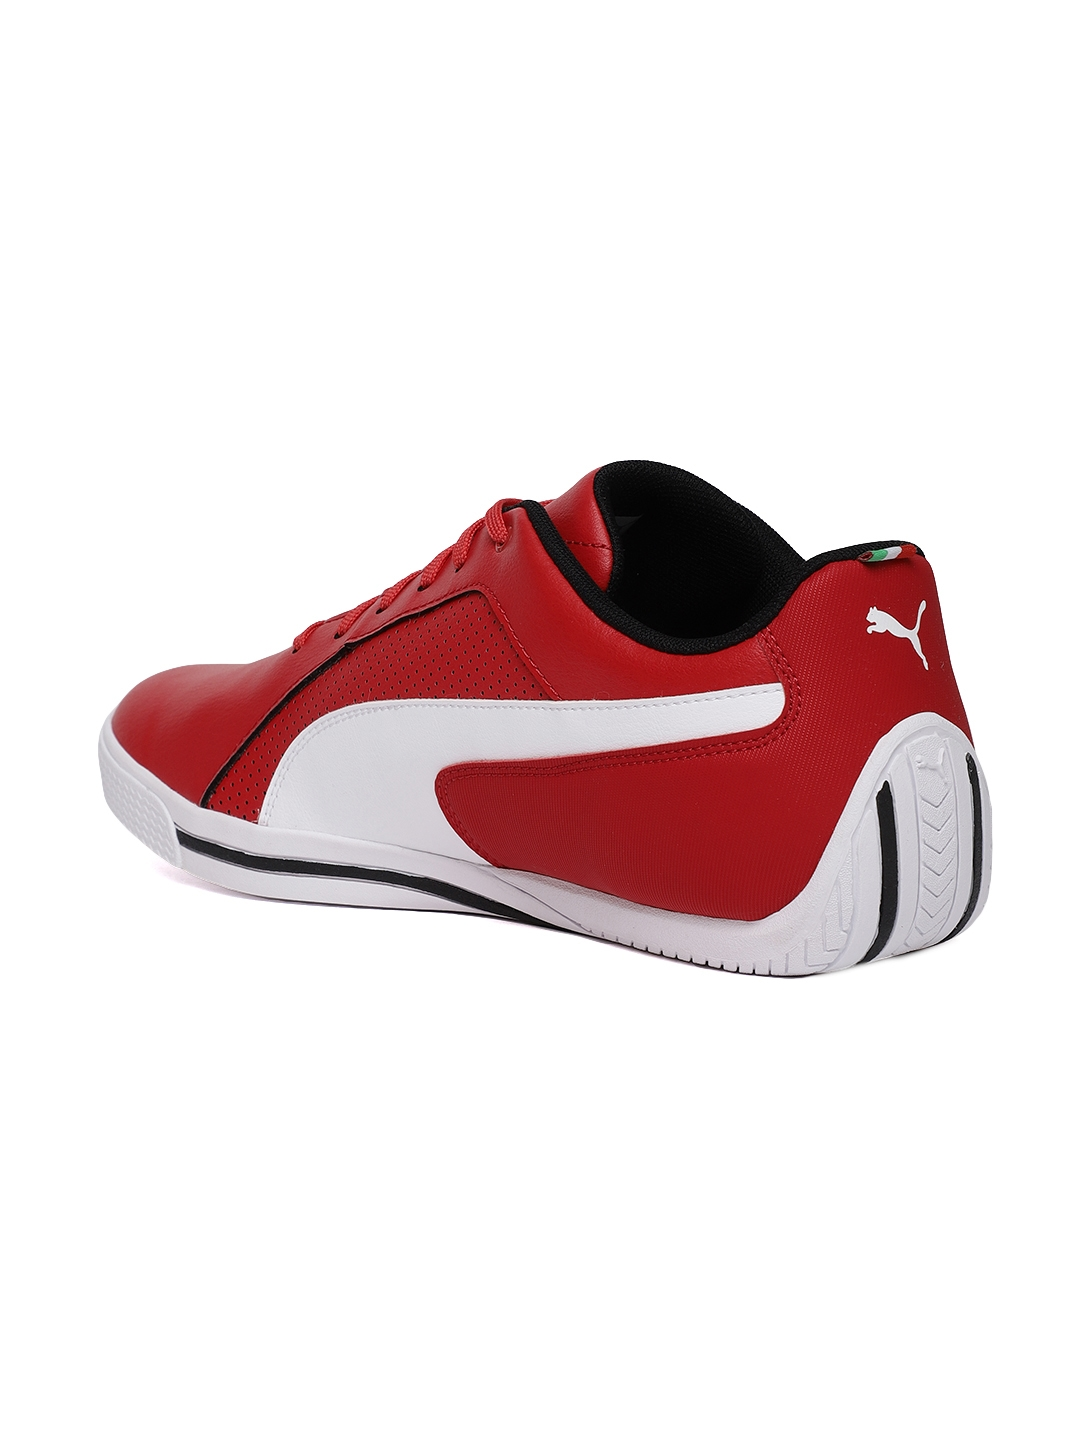 cd99038f7ad0b9 Buy Puma Men Red SF Selezione II Sneakers - Casual Shoes for Men ...